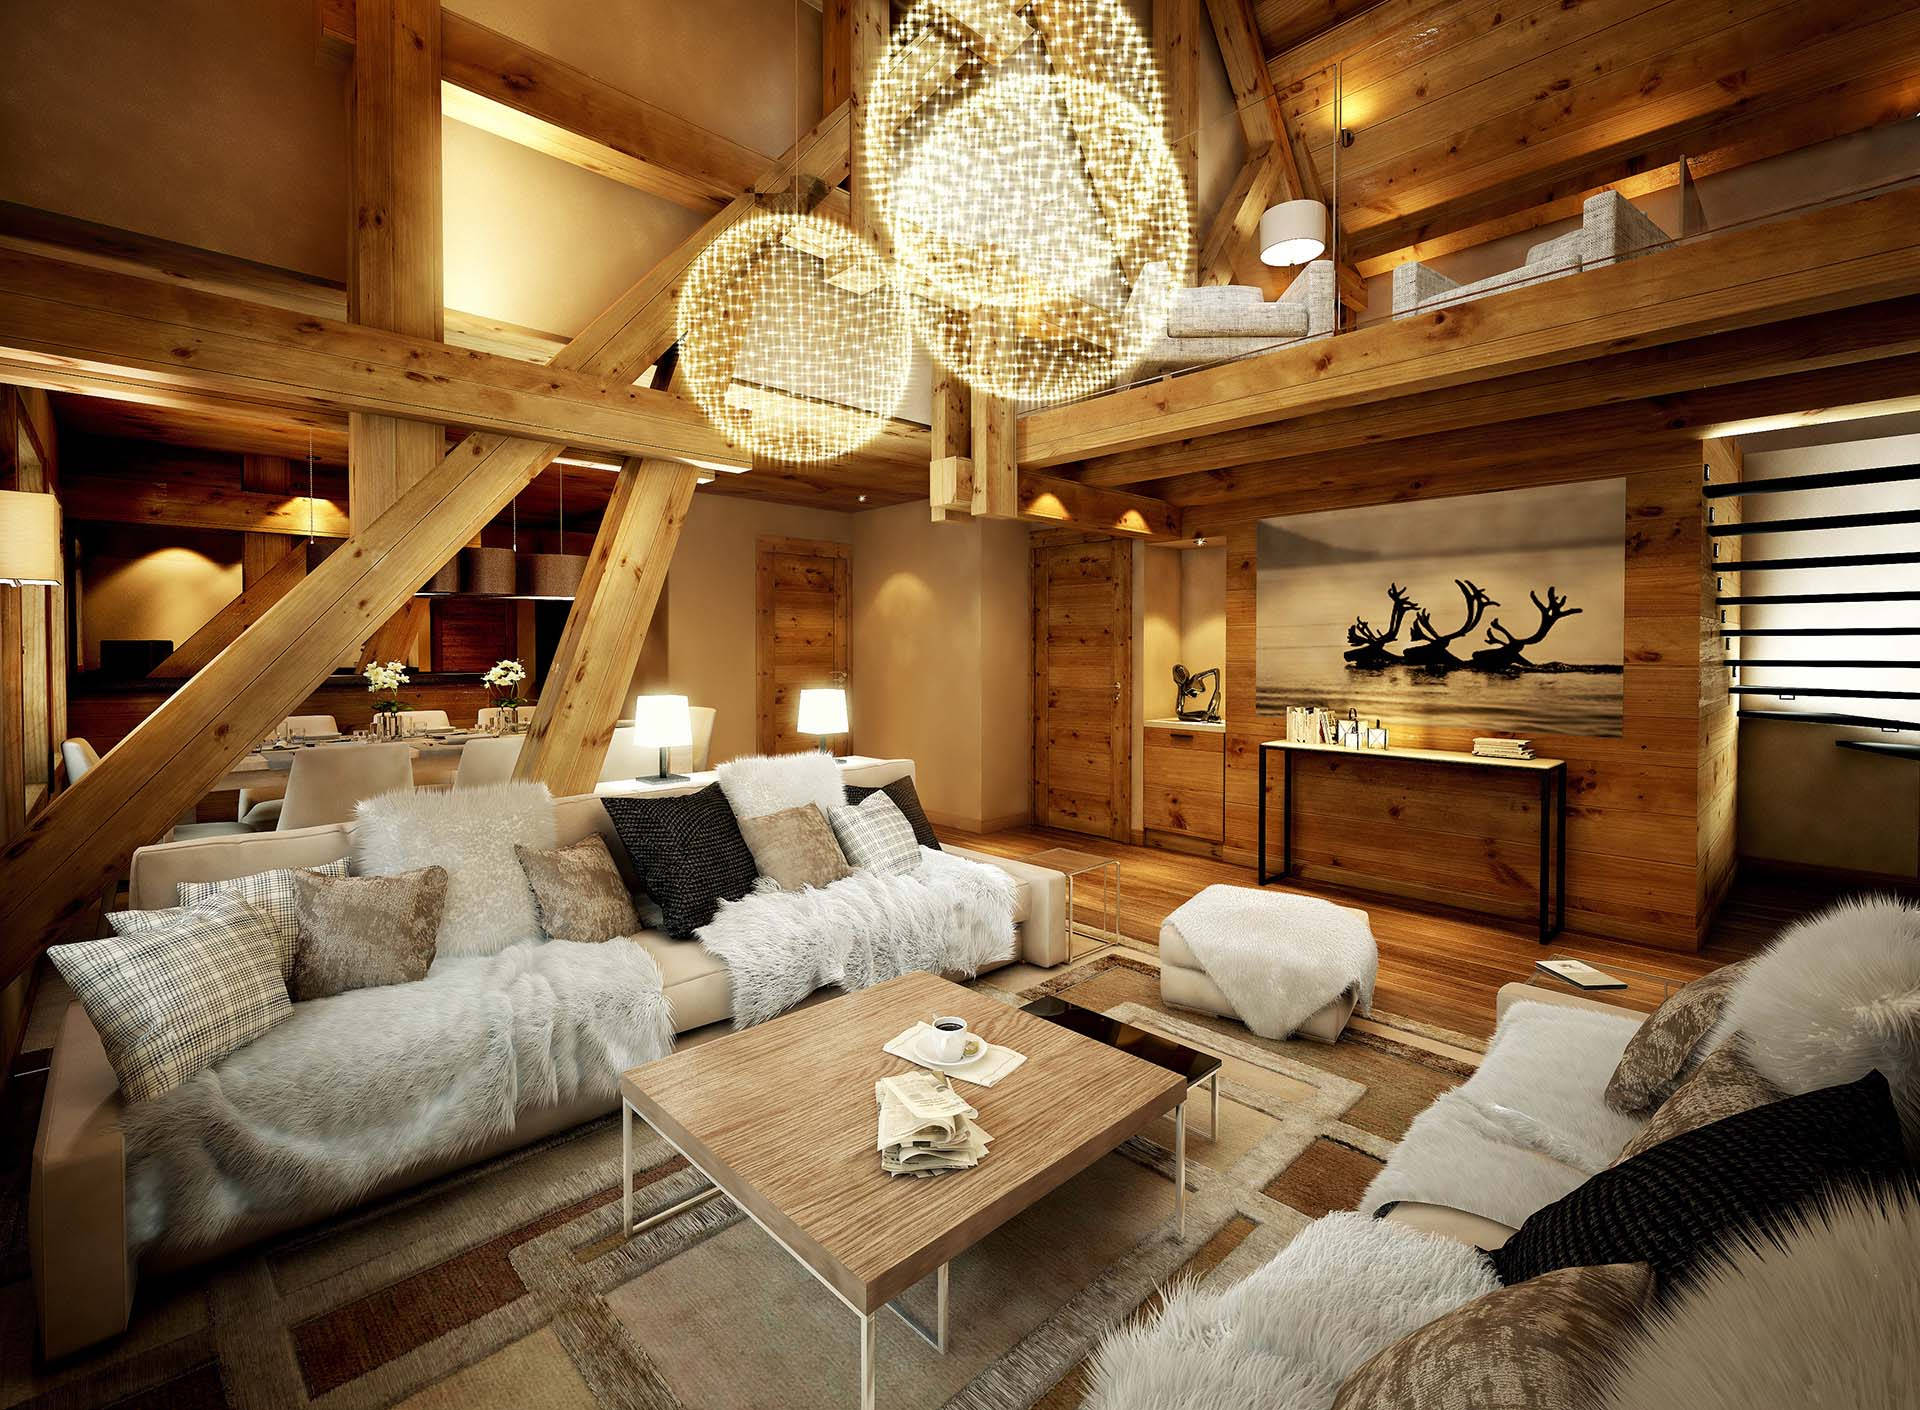 3D Creative agency for luxury real estate